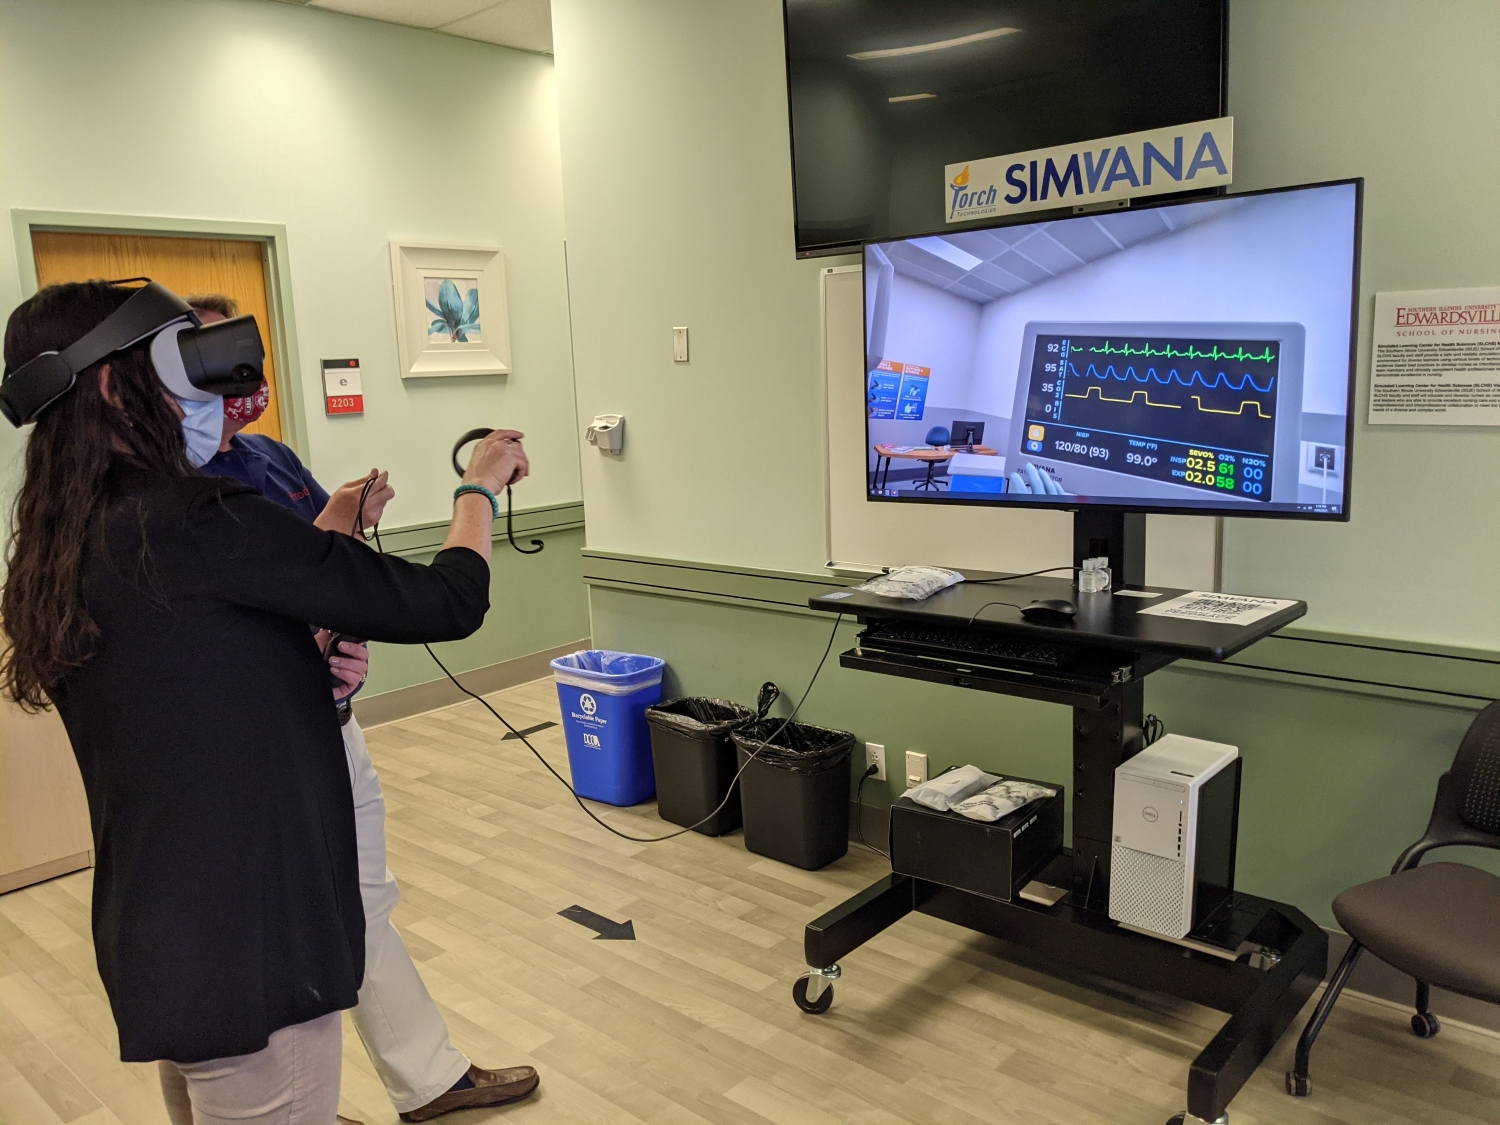 SIMVANA Install and Demo at Southern Illinois University Edwardsville